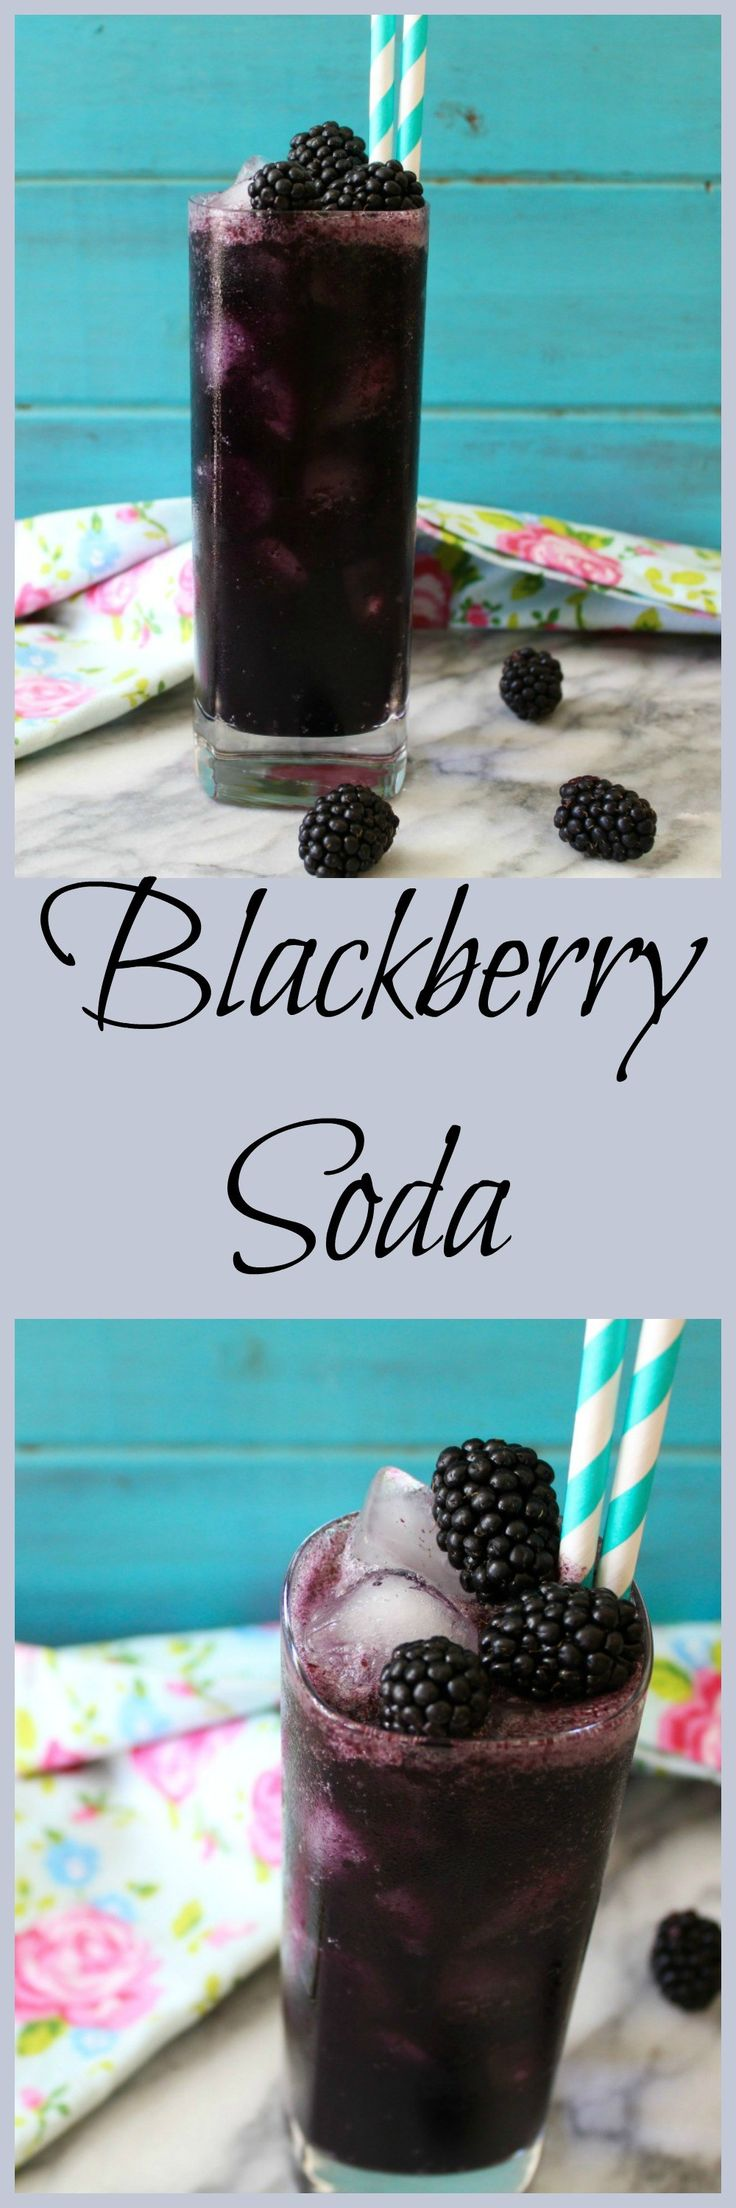 Blackberry Soda Syrup